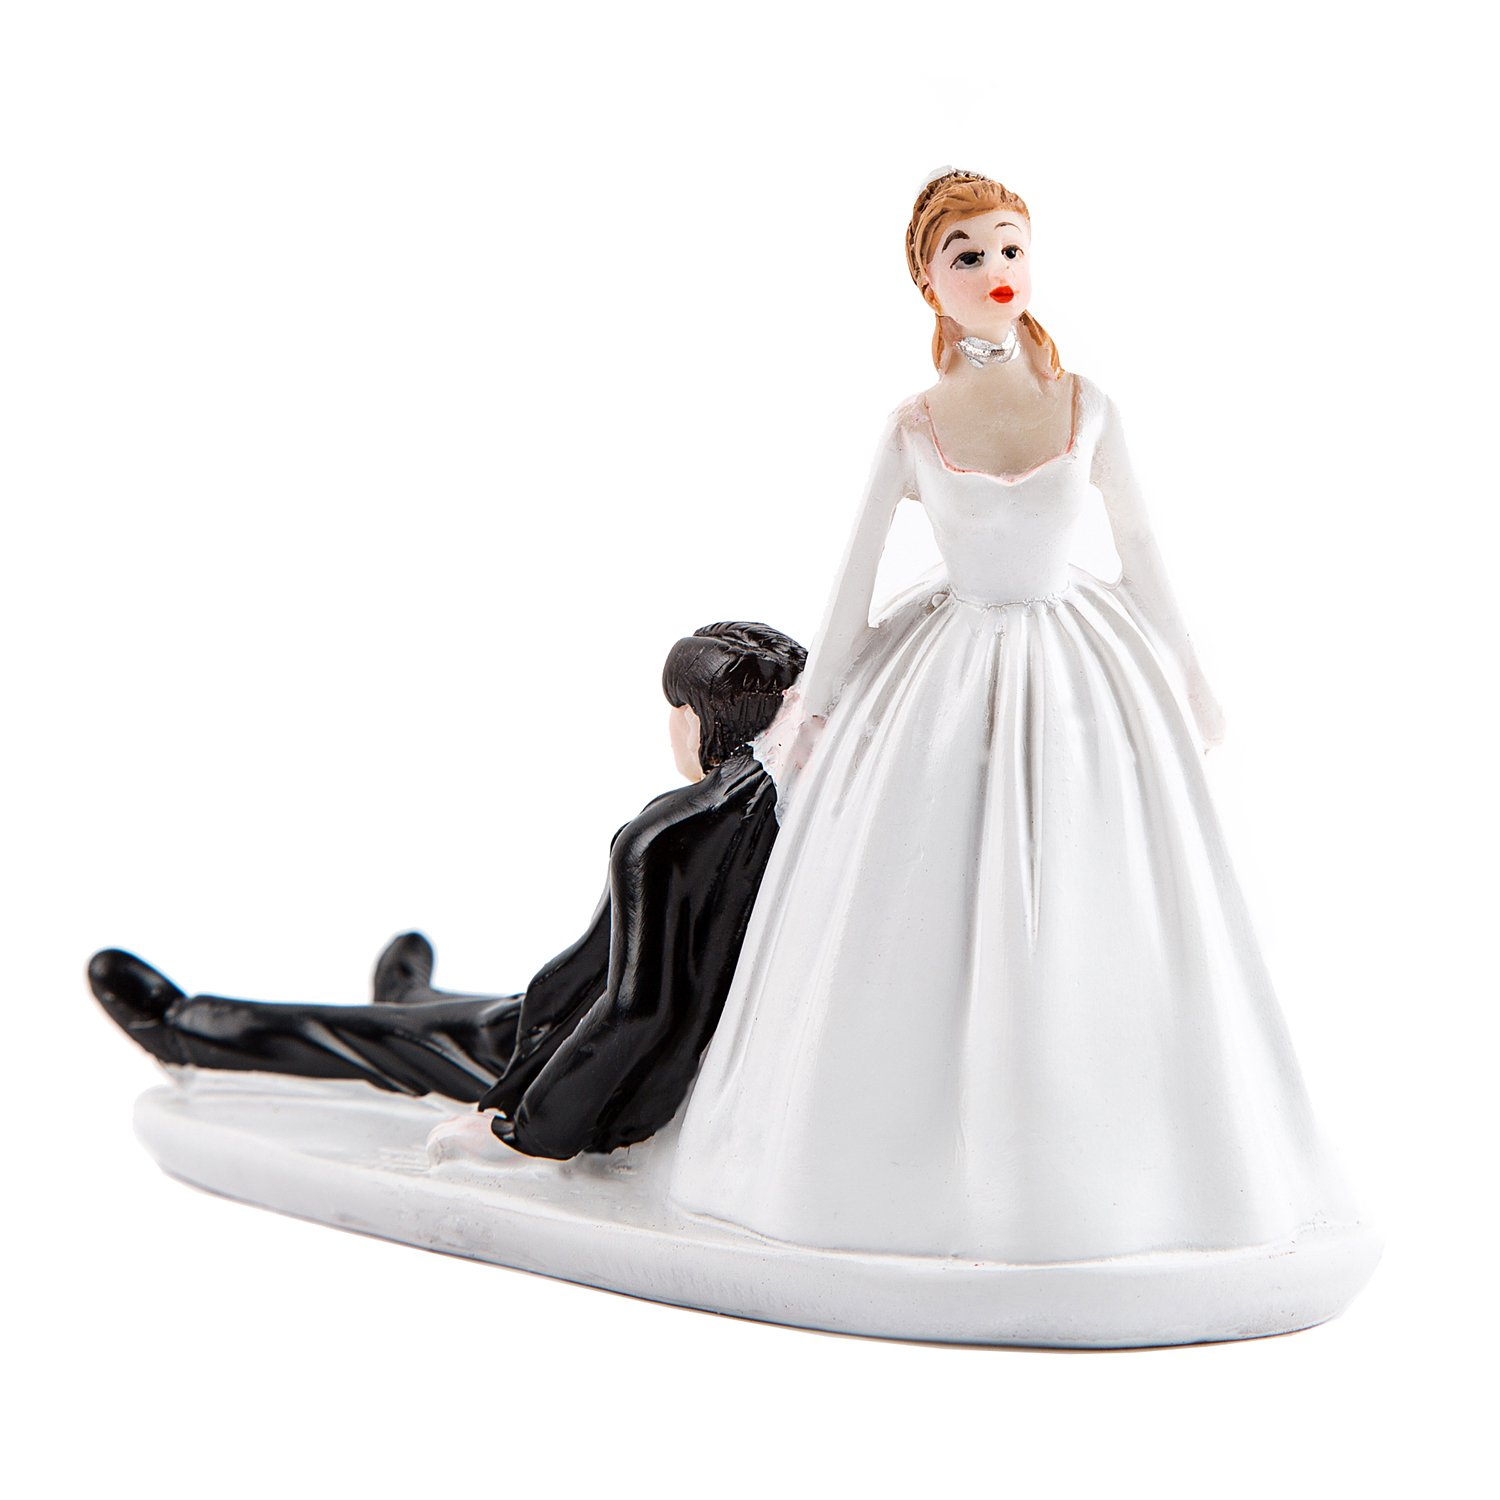 Wedding Cakes Toppers: Bride And Groom, Wedding Cake Topper, Funny The Mad In